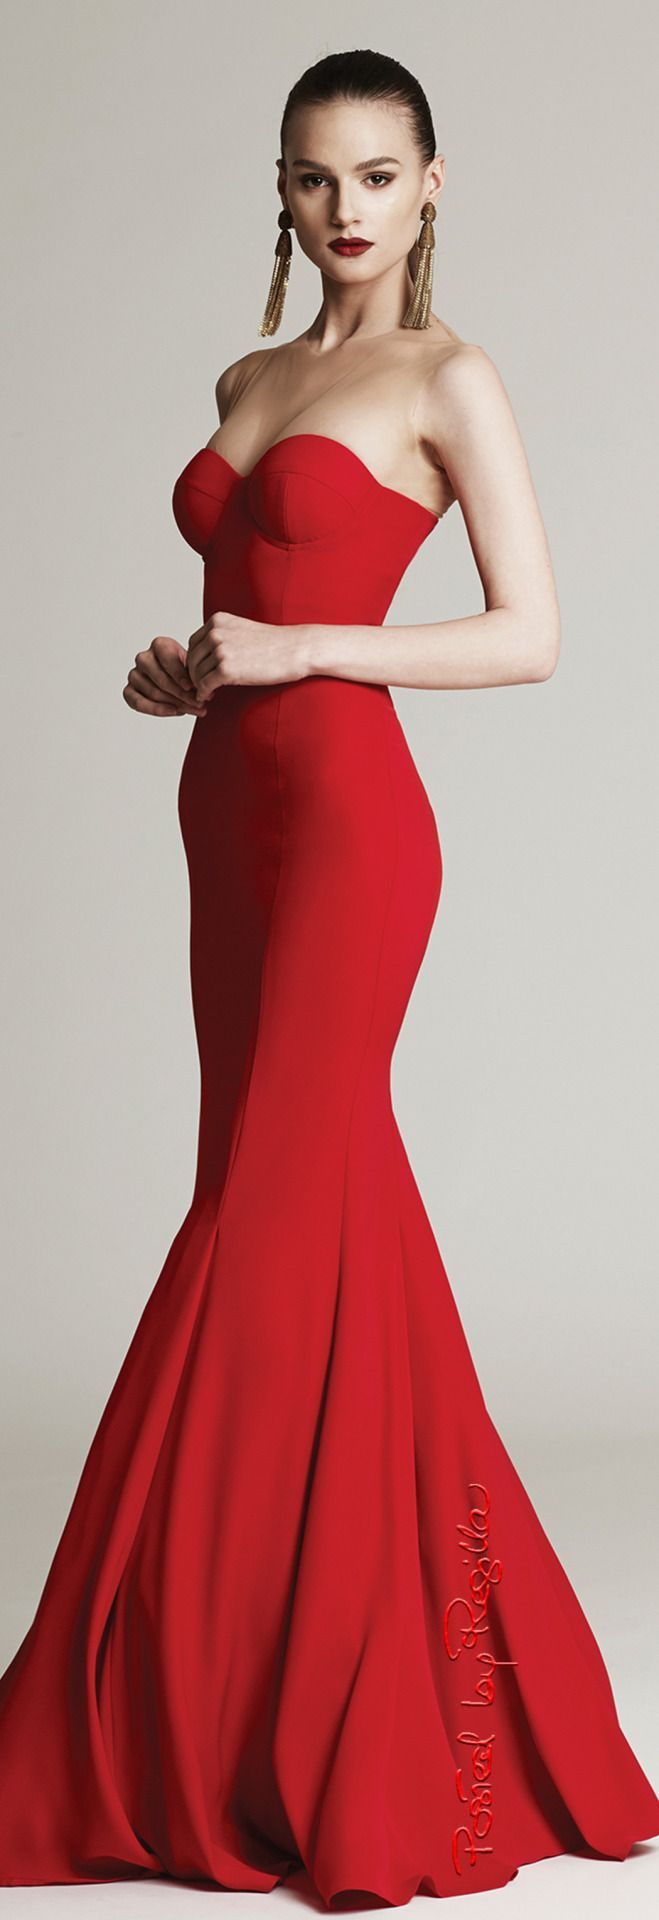 beautiful women wearing red dresses  red evening dress